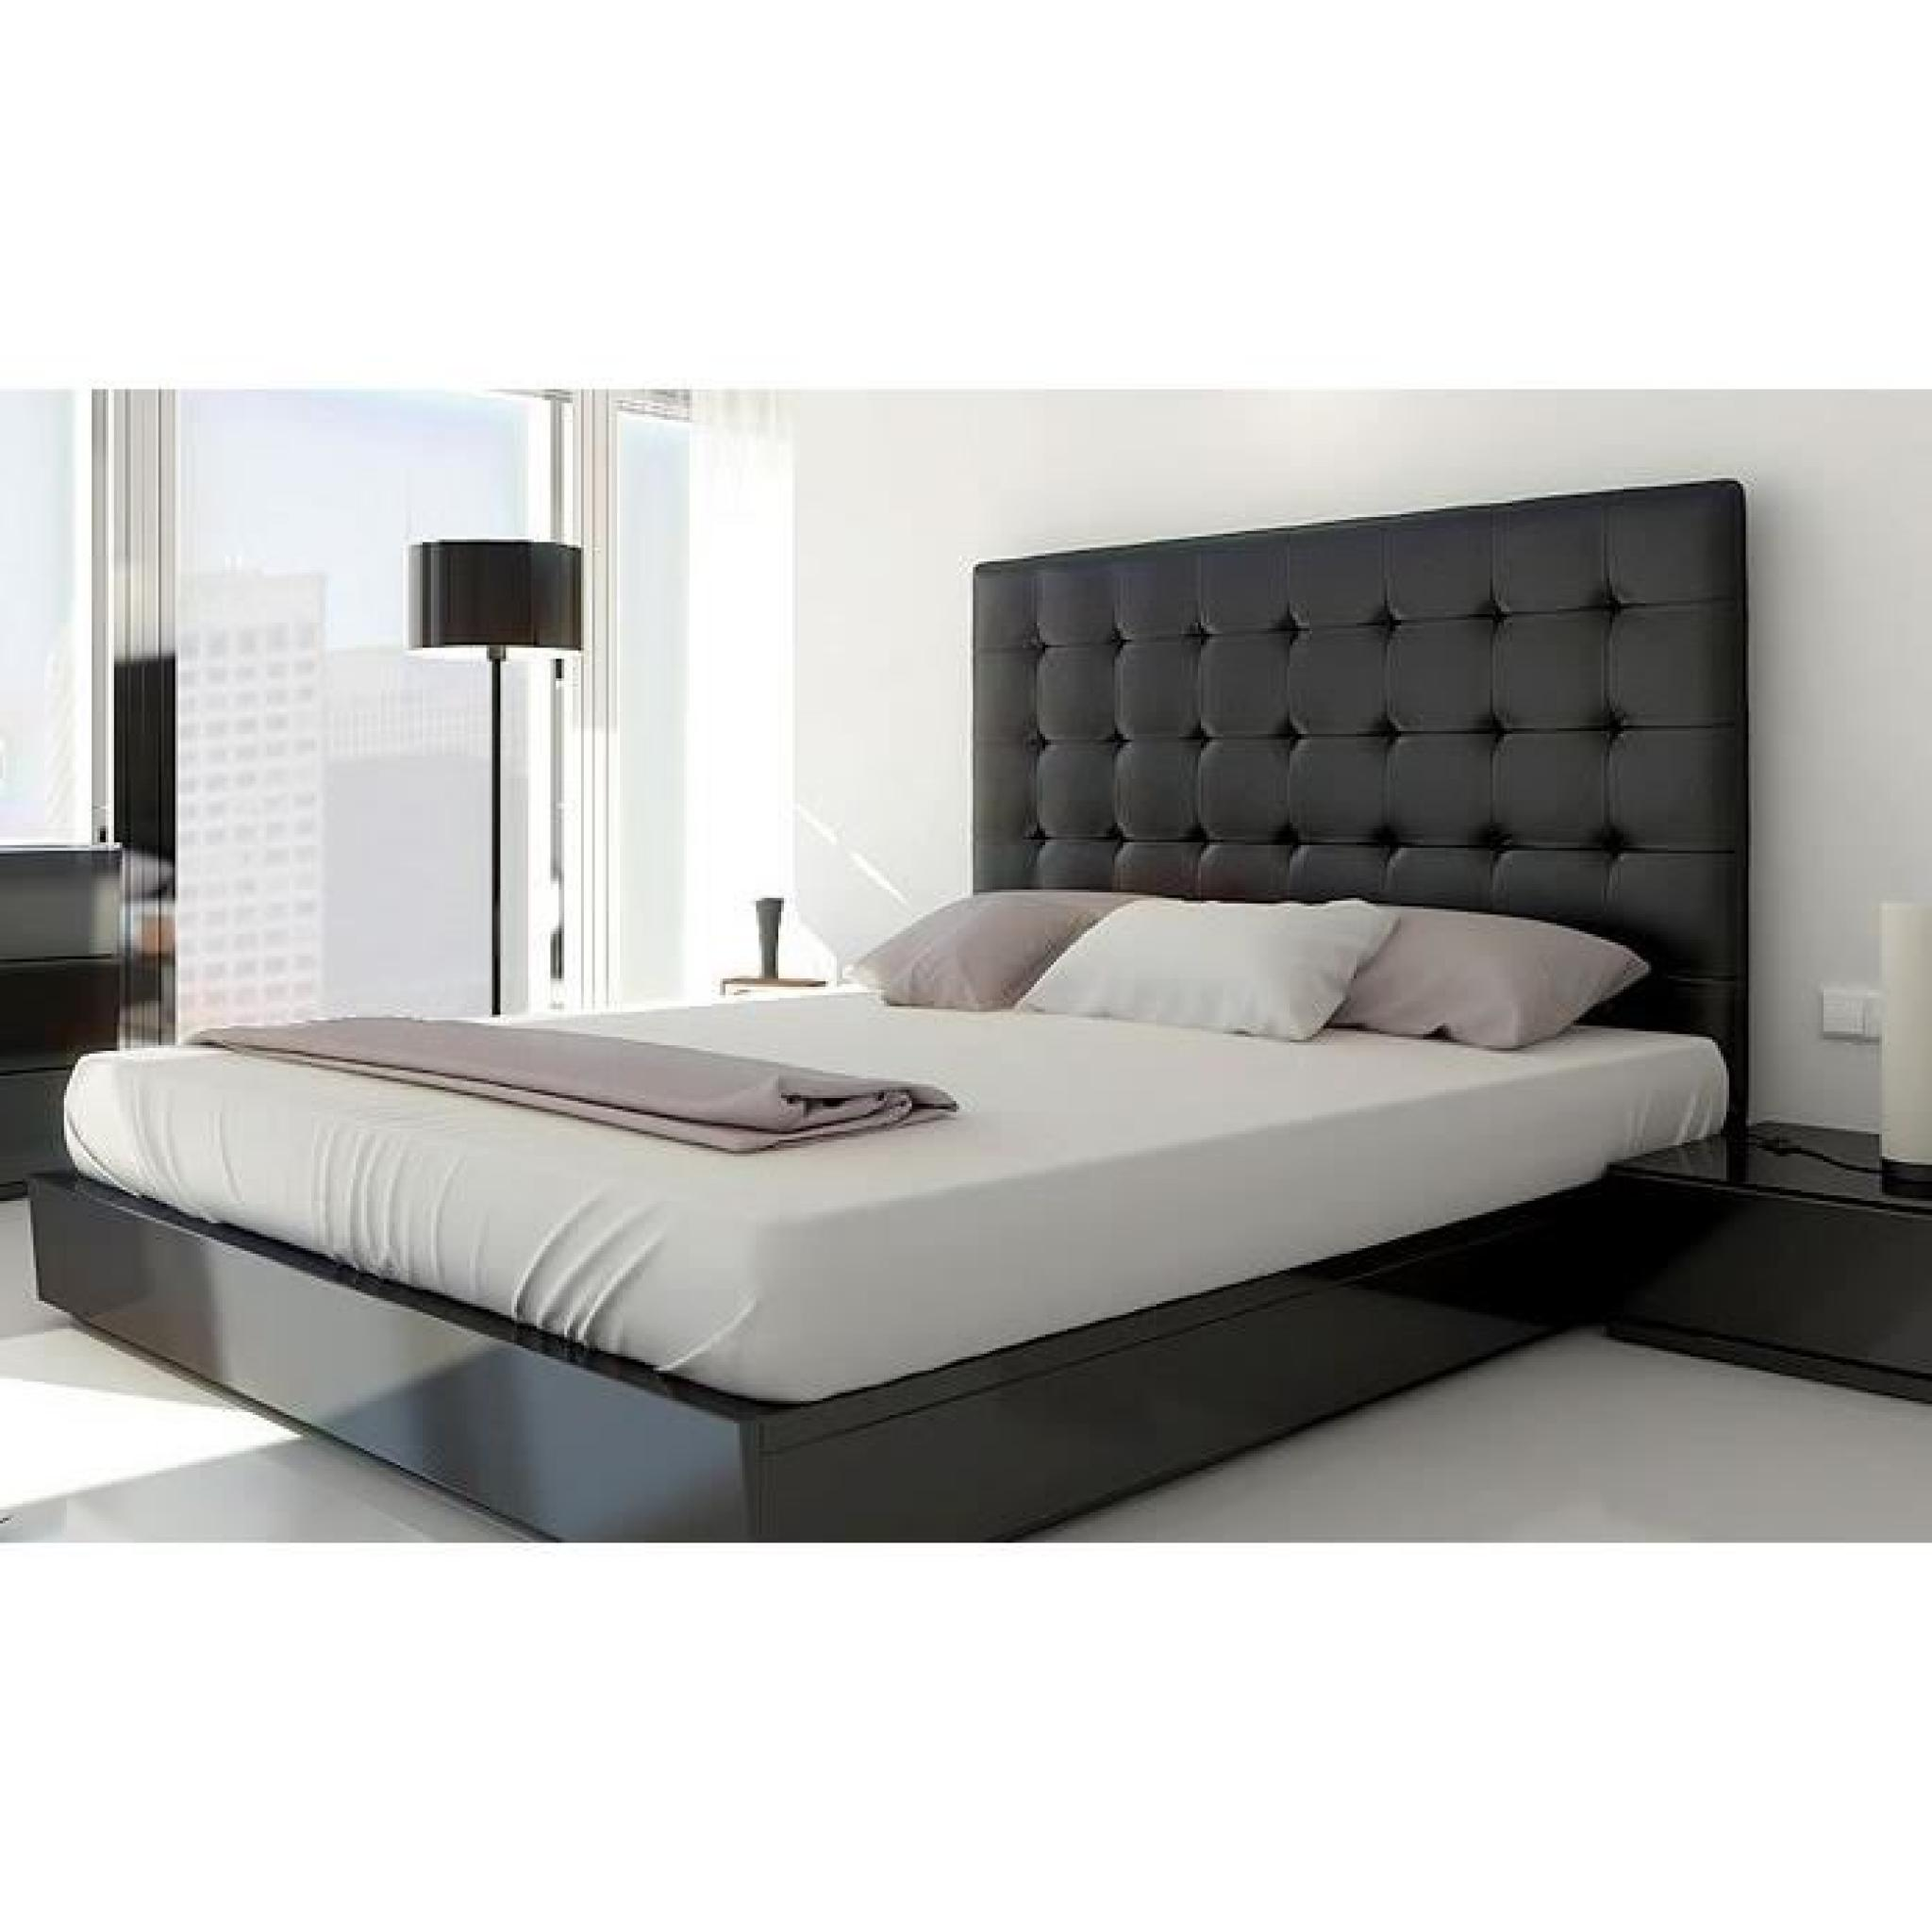 t te de lit capitonn e 160 noir achat vente tete de lit pas cher couleur et. Black Bedroom Furniture Sets. Home Design Ideas